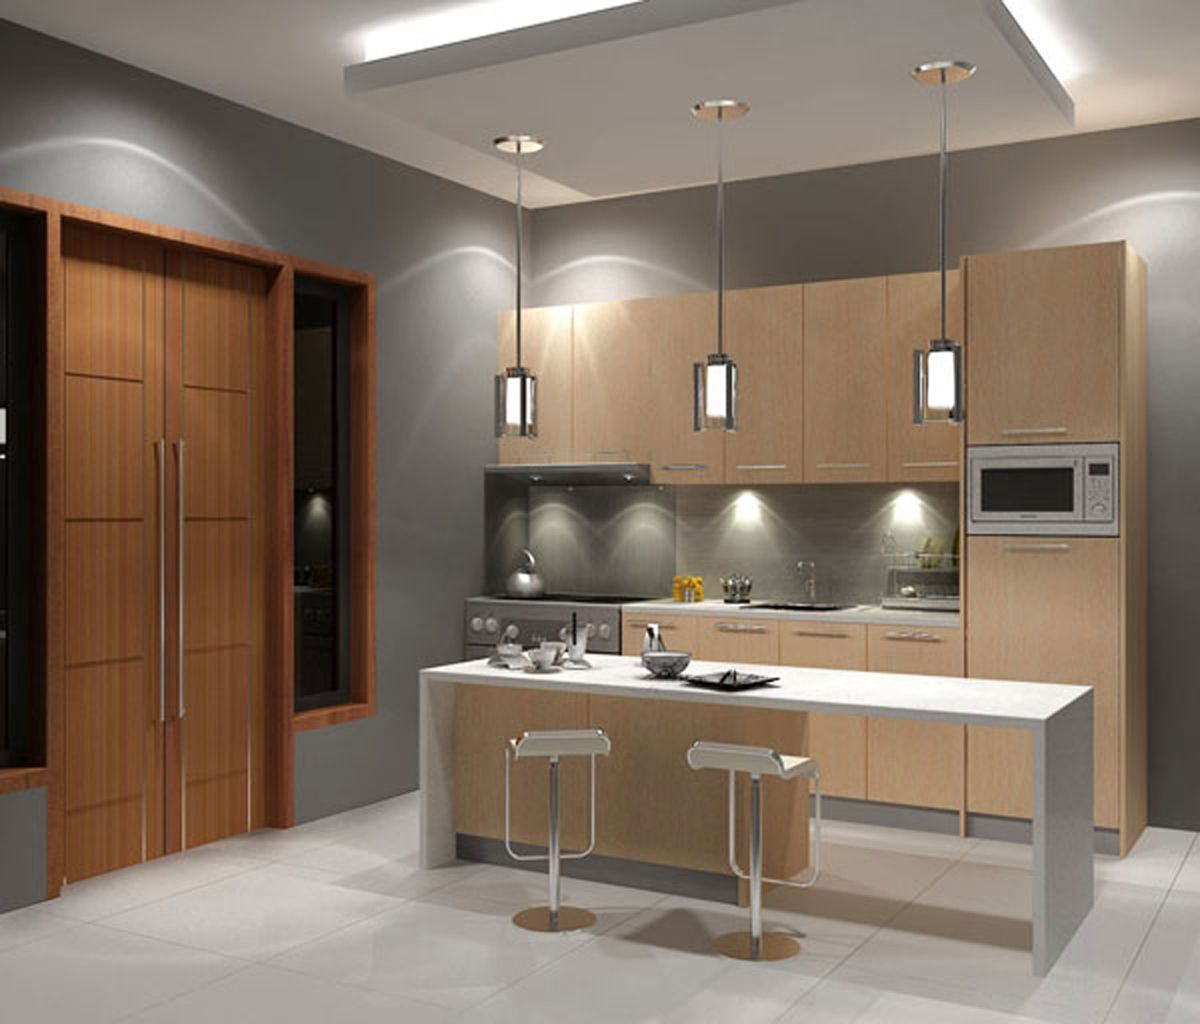 Small Contemporary Kitchens  Modernkitchentablesforsmall Simple Design Kitchen Cabinets For Small Kitchen Design Ideas